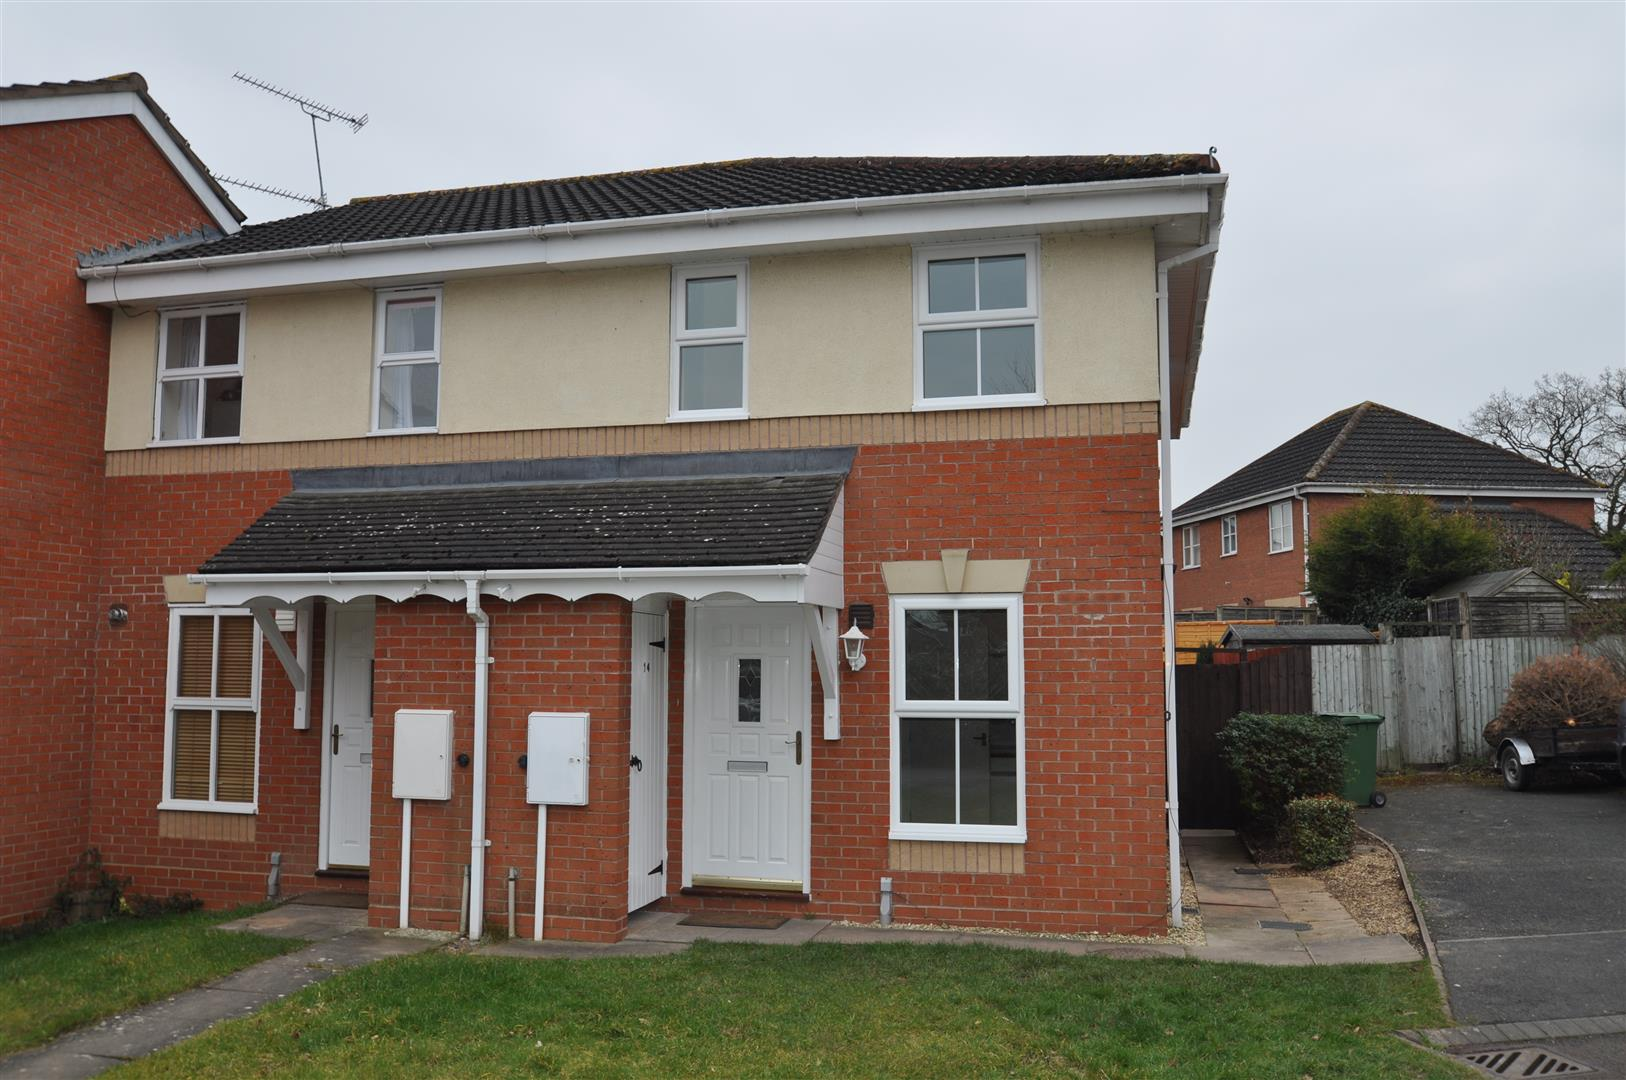 2 Bedrooms House for sale in Falcon Close, Droitwich